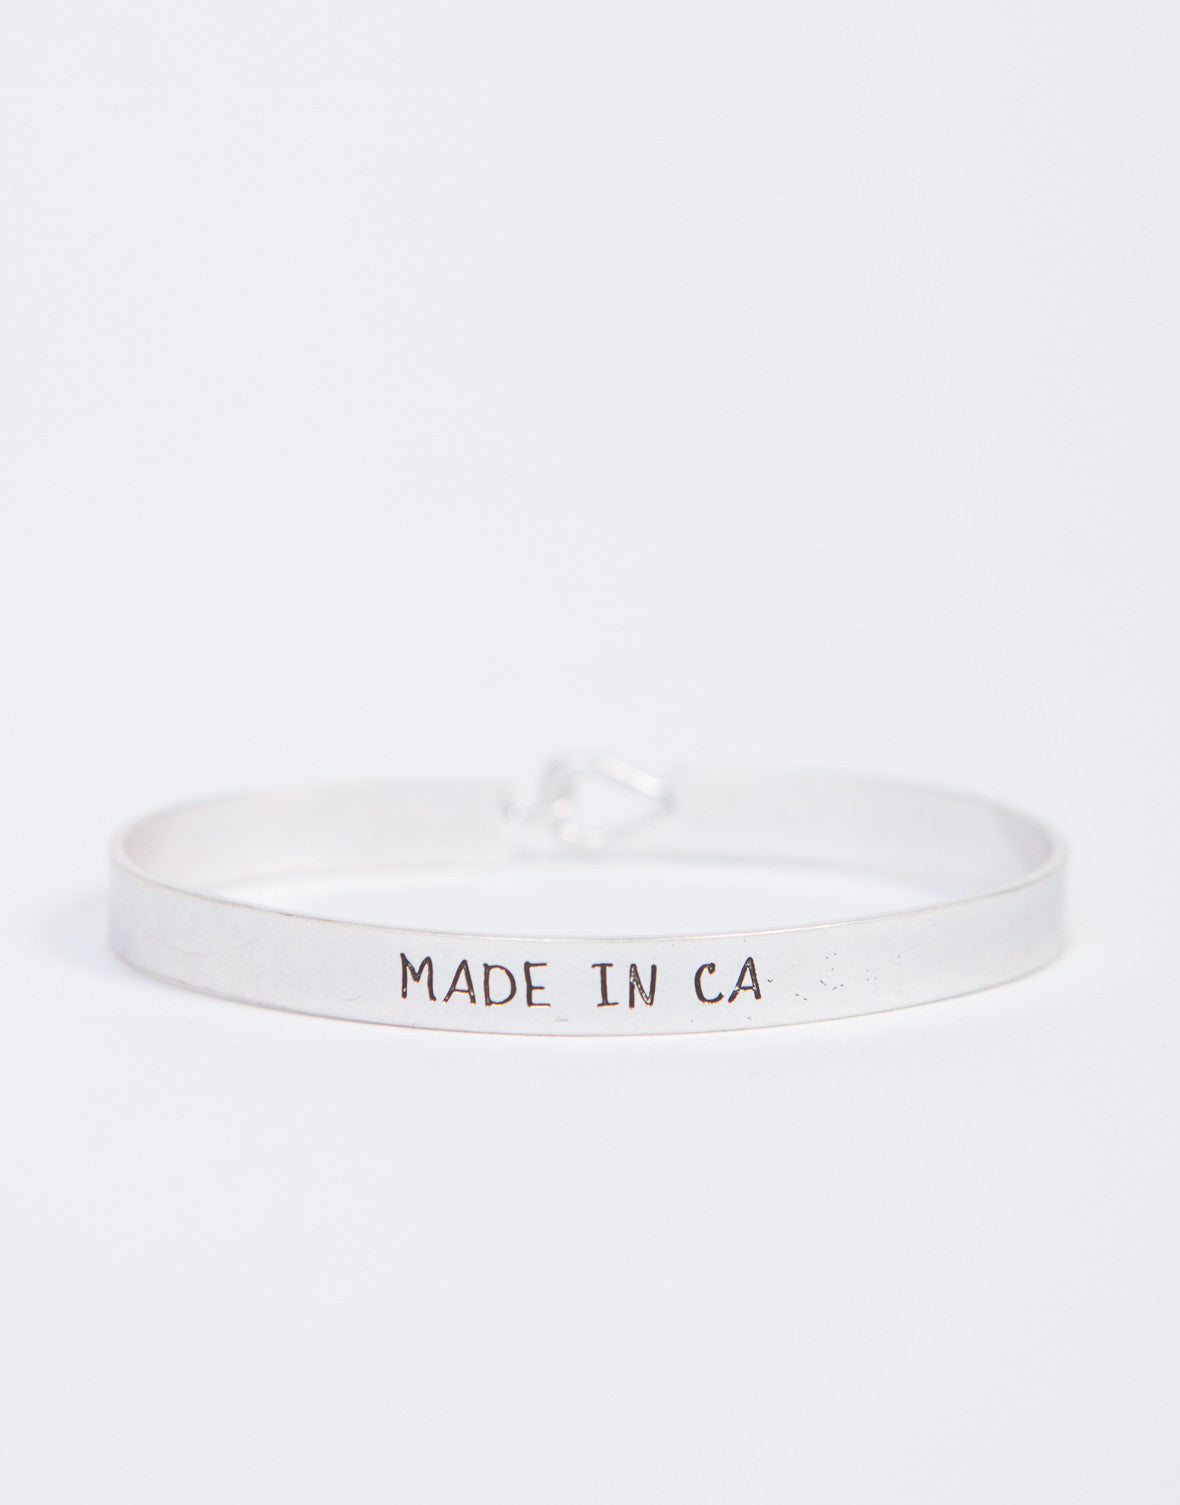 Made in CA Bracelet